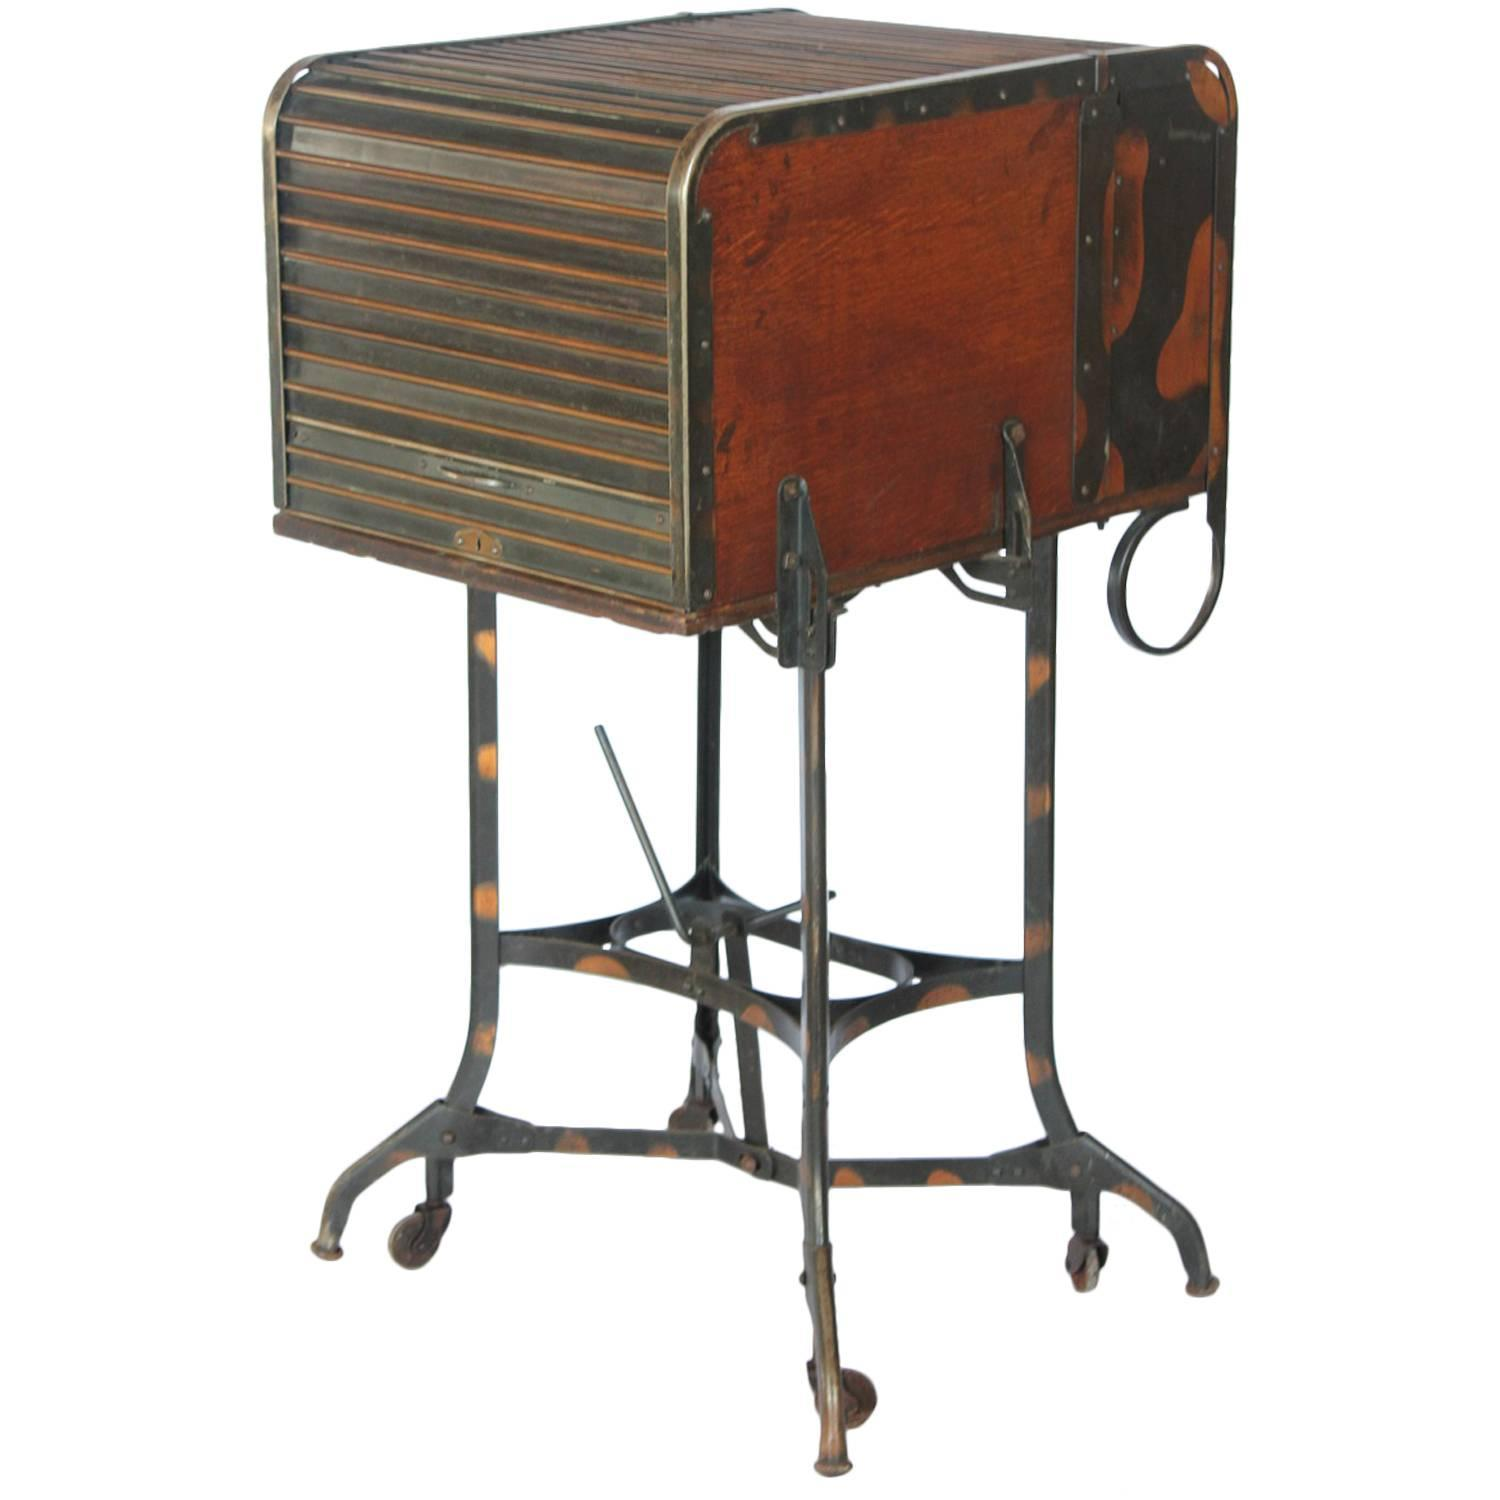 Exceptionnel Early 1900s American Industrial Roll Top Desk/Table By Toledo